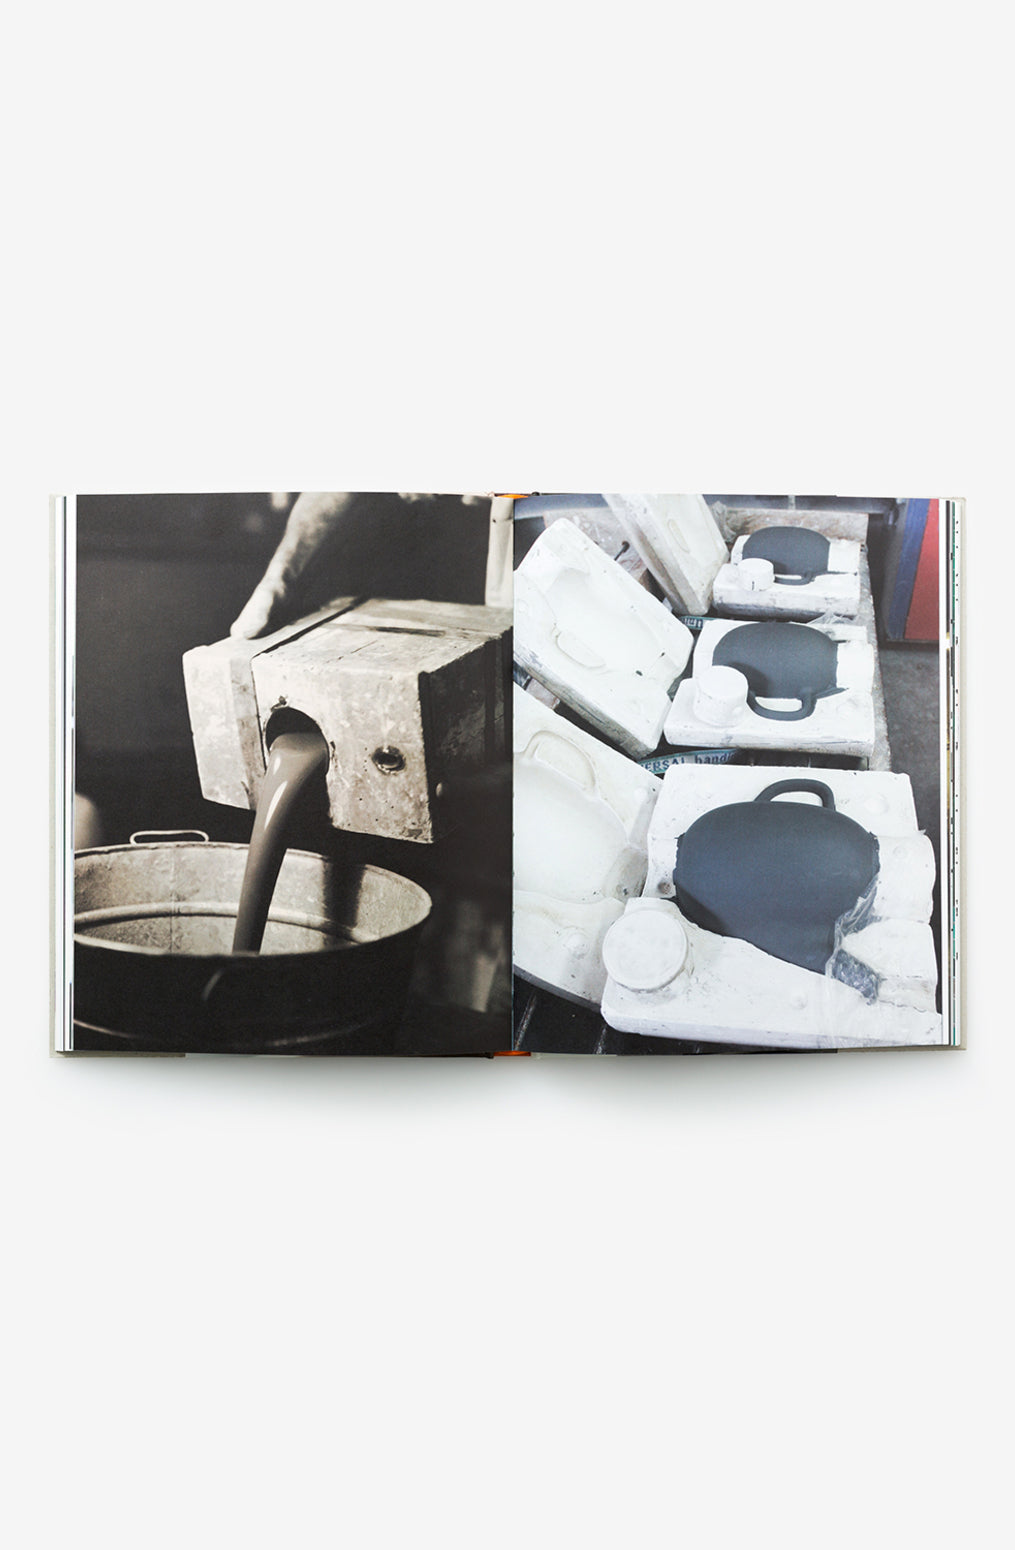 Alabama Chanin Heath Ceramics: The Complexity of Simplicity Book on Organic Hand-Made Pottery